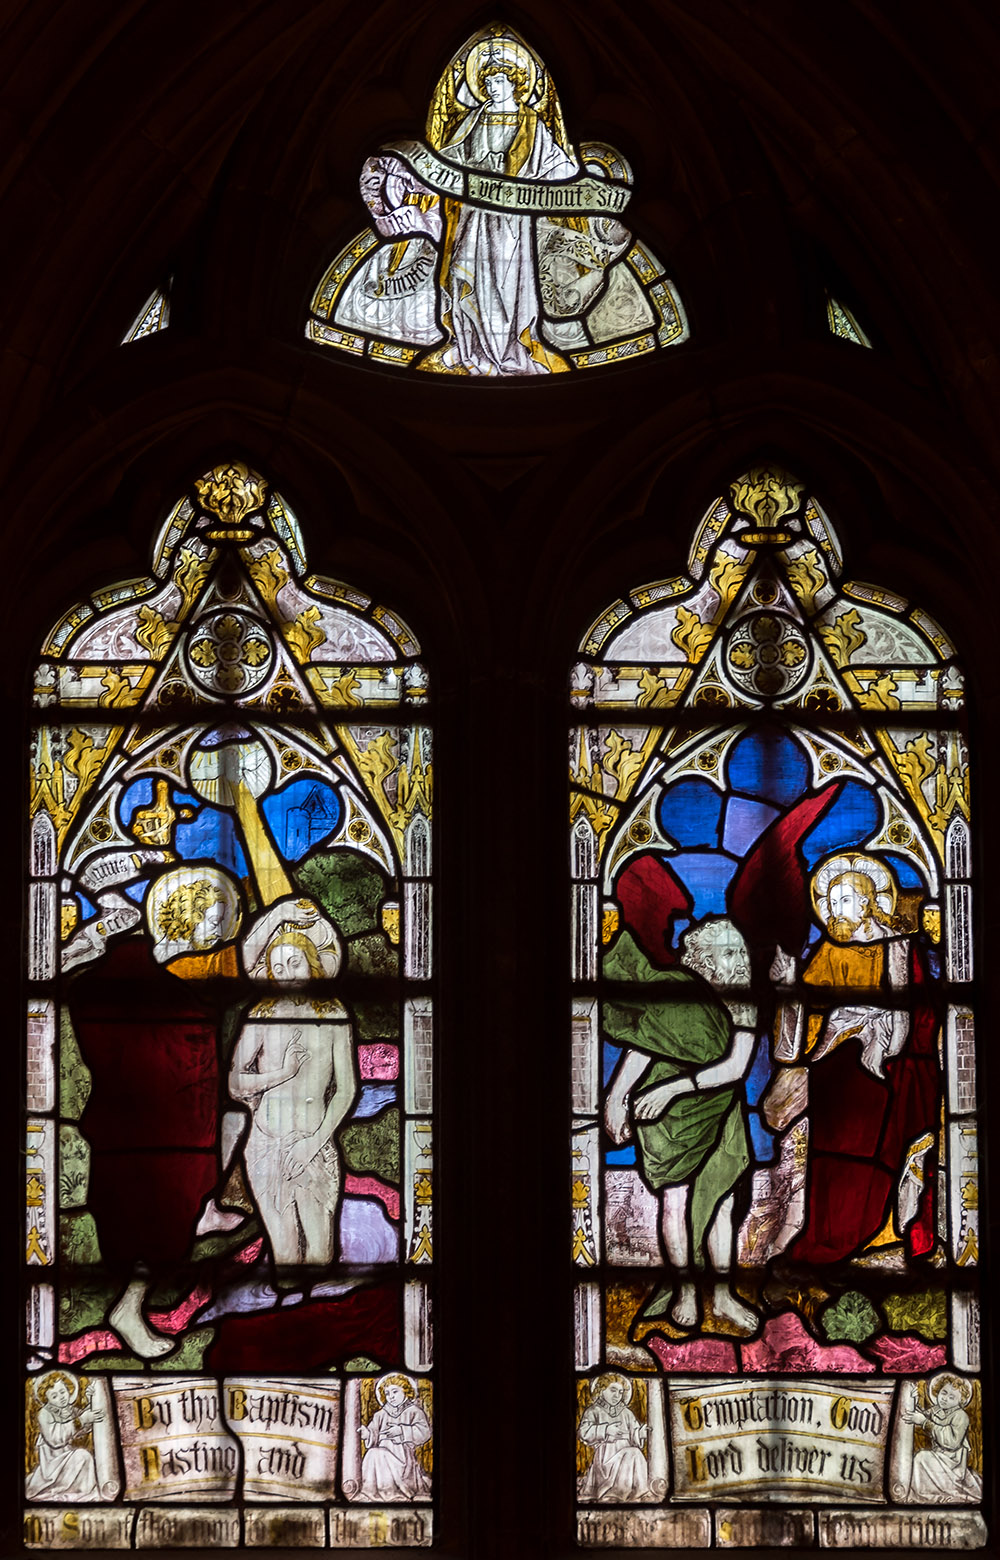 1879-Y447-nVII-Thornhill-All-Saints